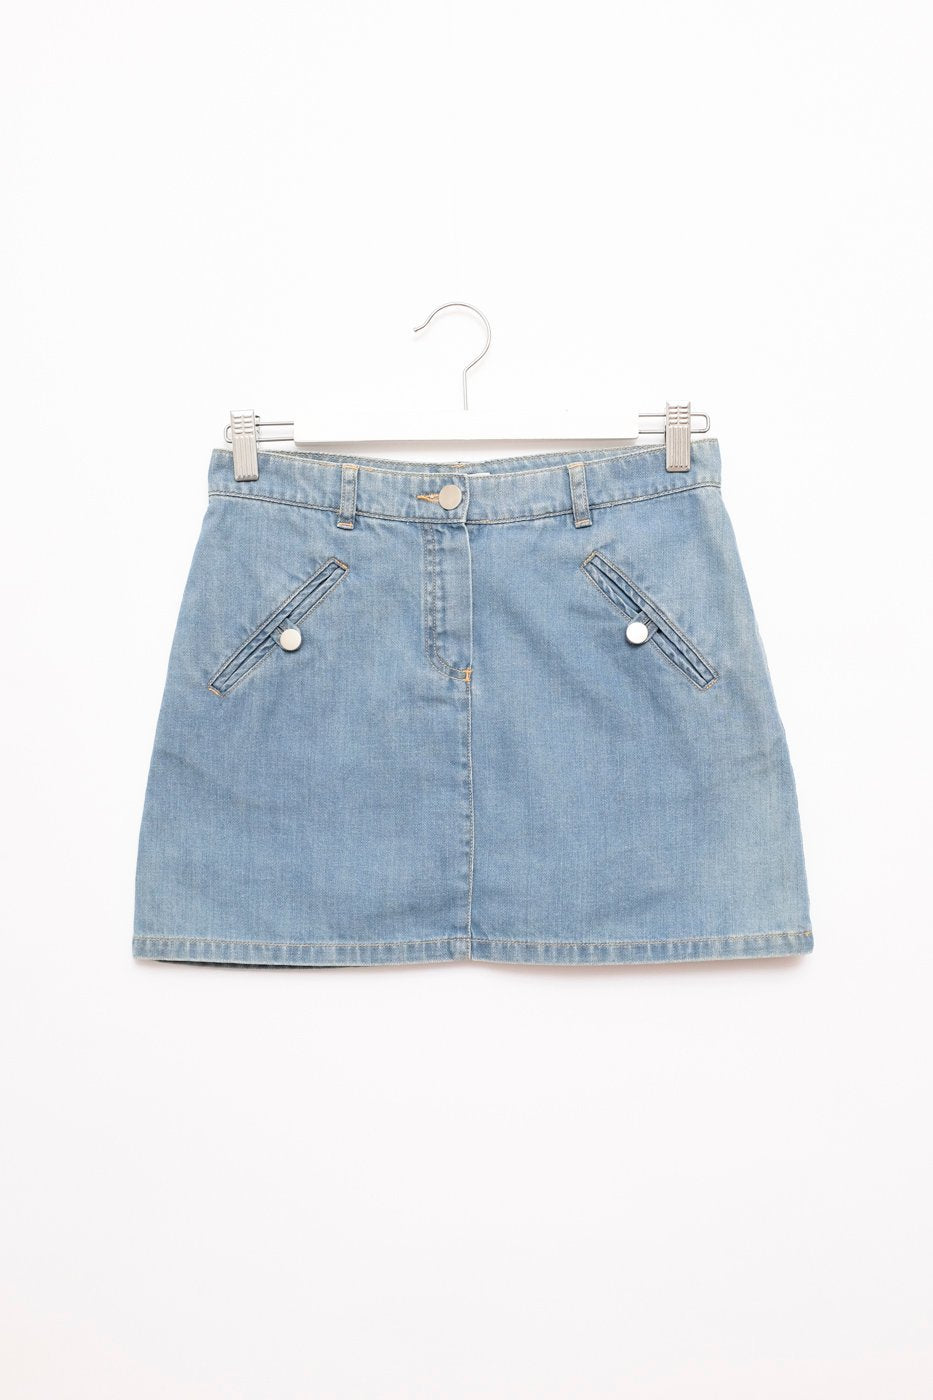 0423_CHLOÉ VINTAGE JEANS DENIM SKIRT // 34